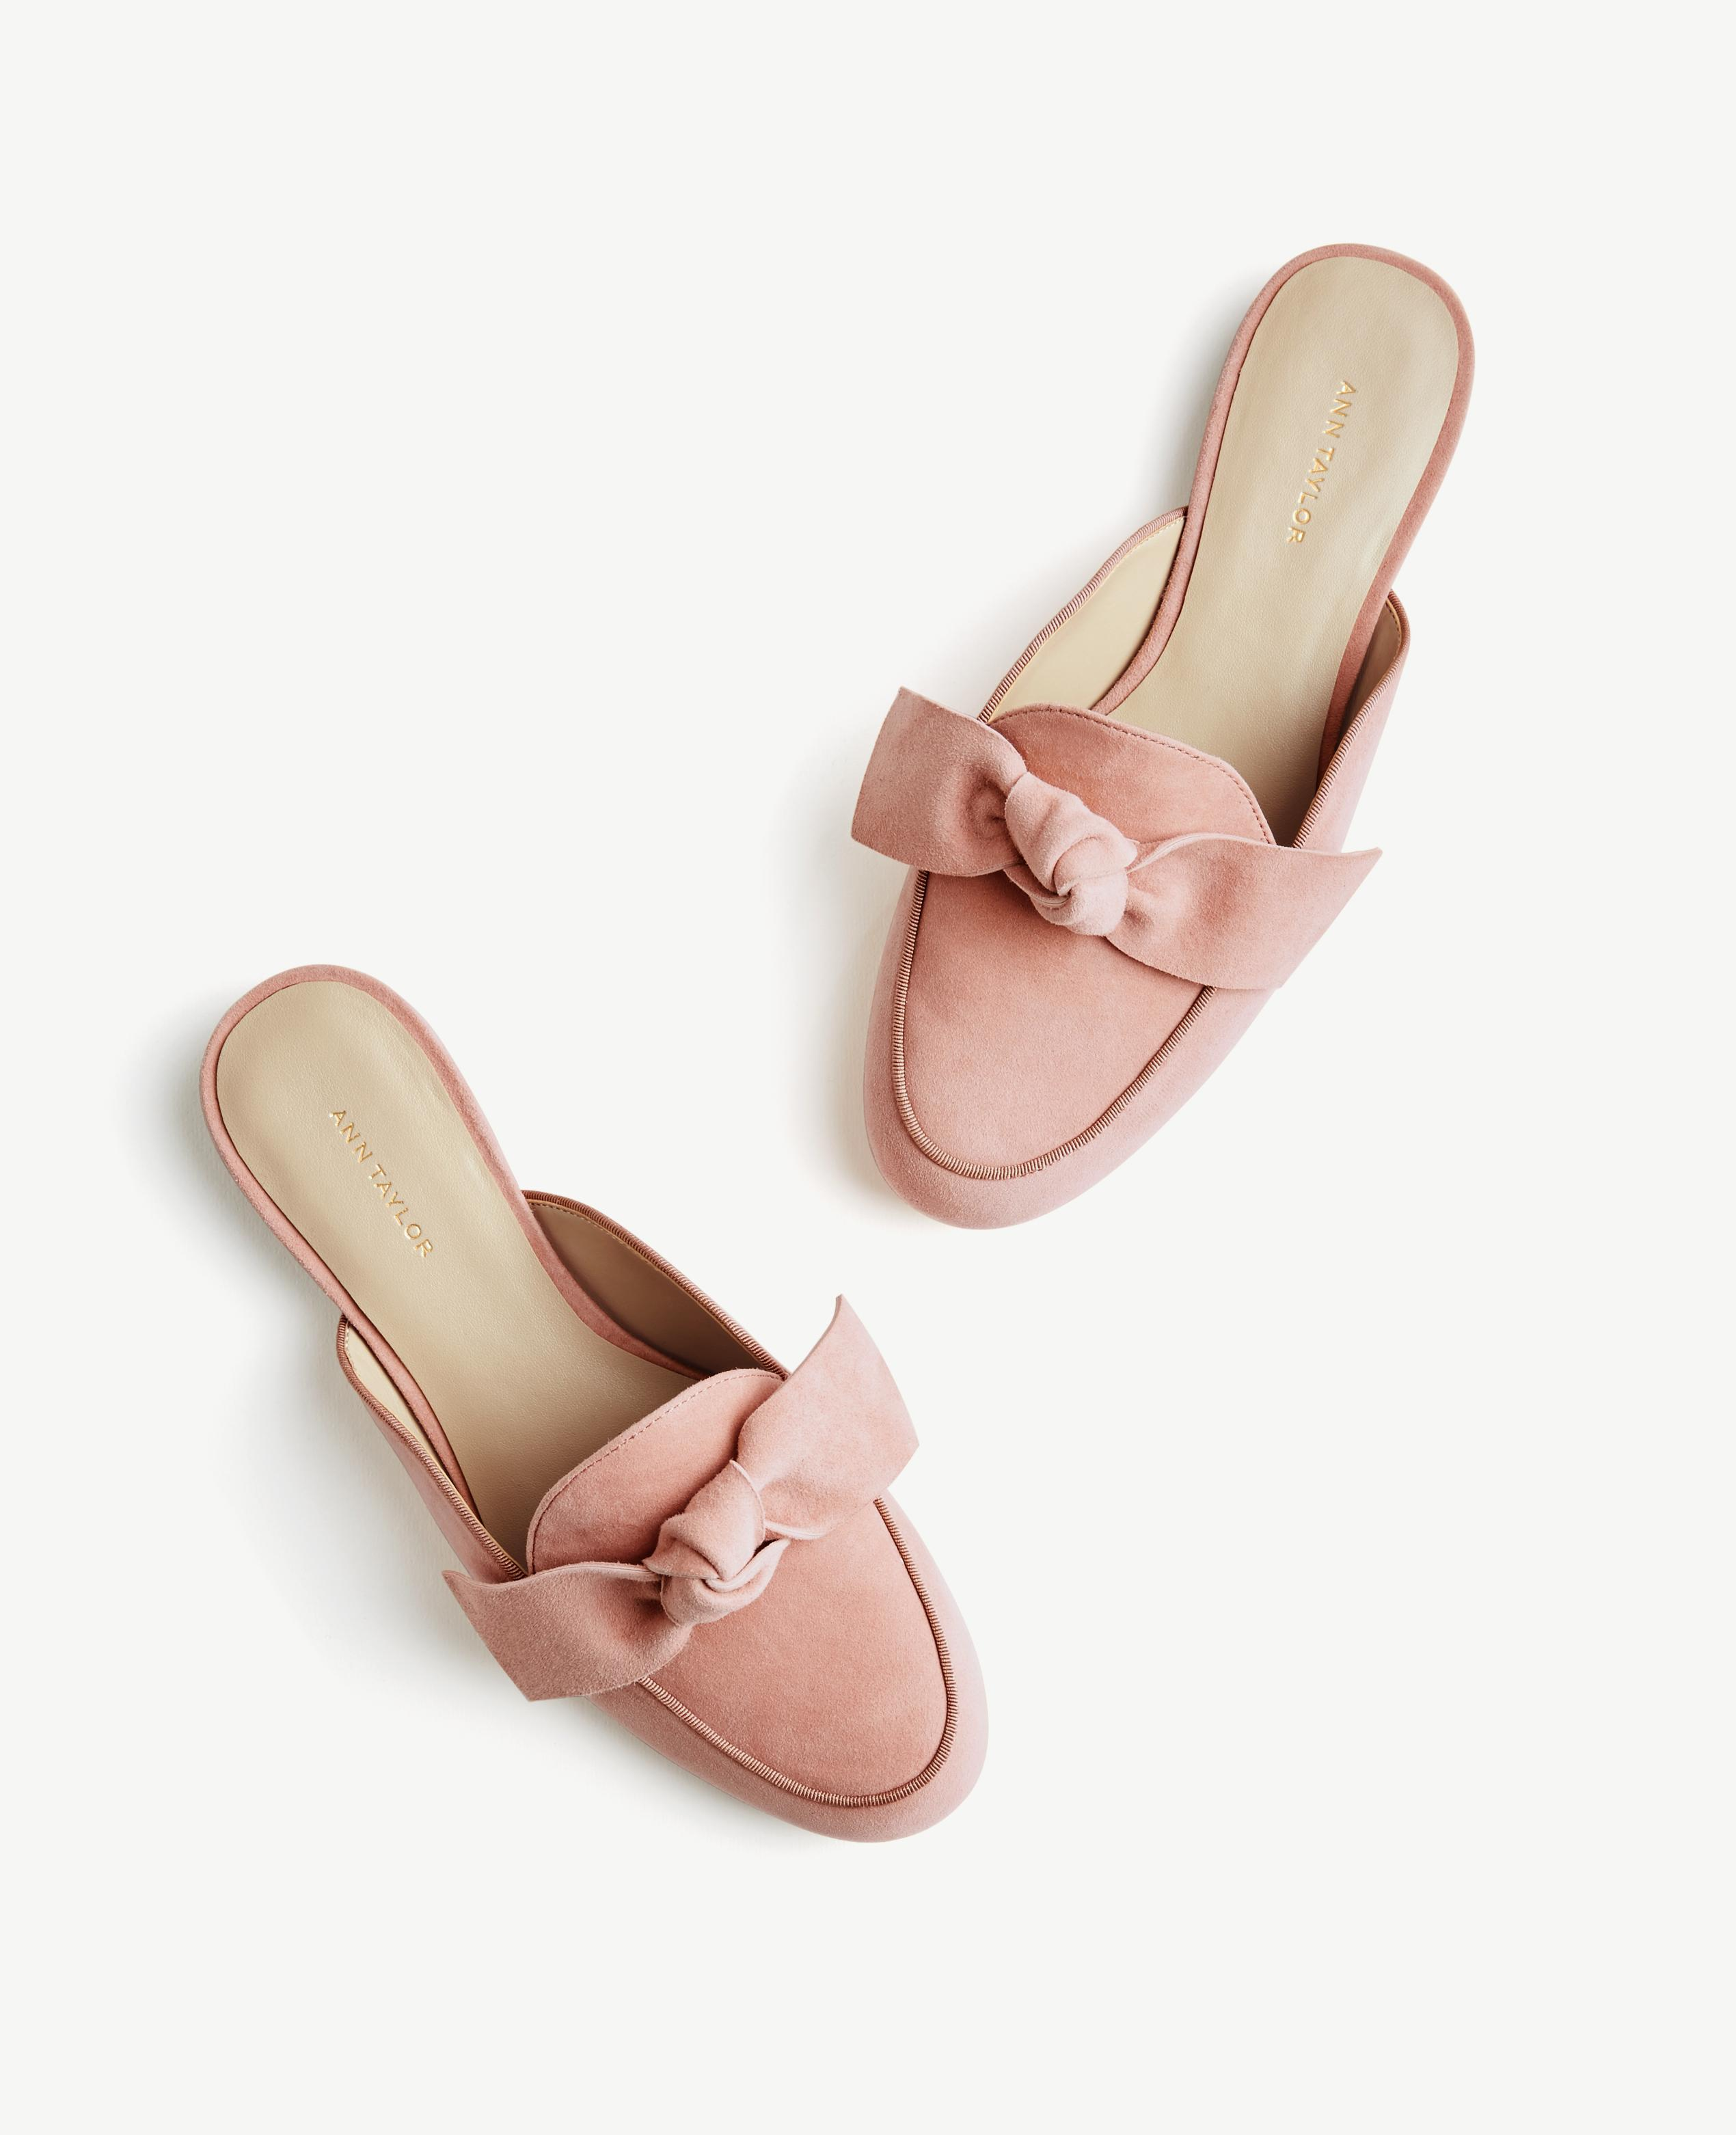 The season of stylish flats is here! Fall shoe love: Ann Taylor Siena Suede Bow Loafer Slides | glitterinc.com | @glitterinc - 15 Trendy Flats To Fall in Love With This Season by NC style blogger Glitter, Inc.